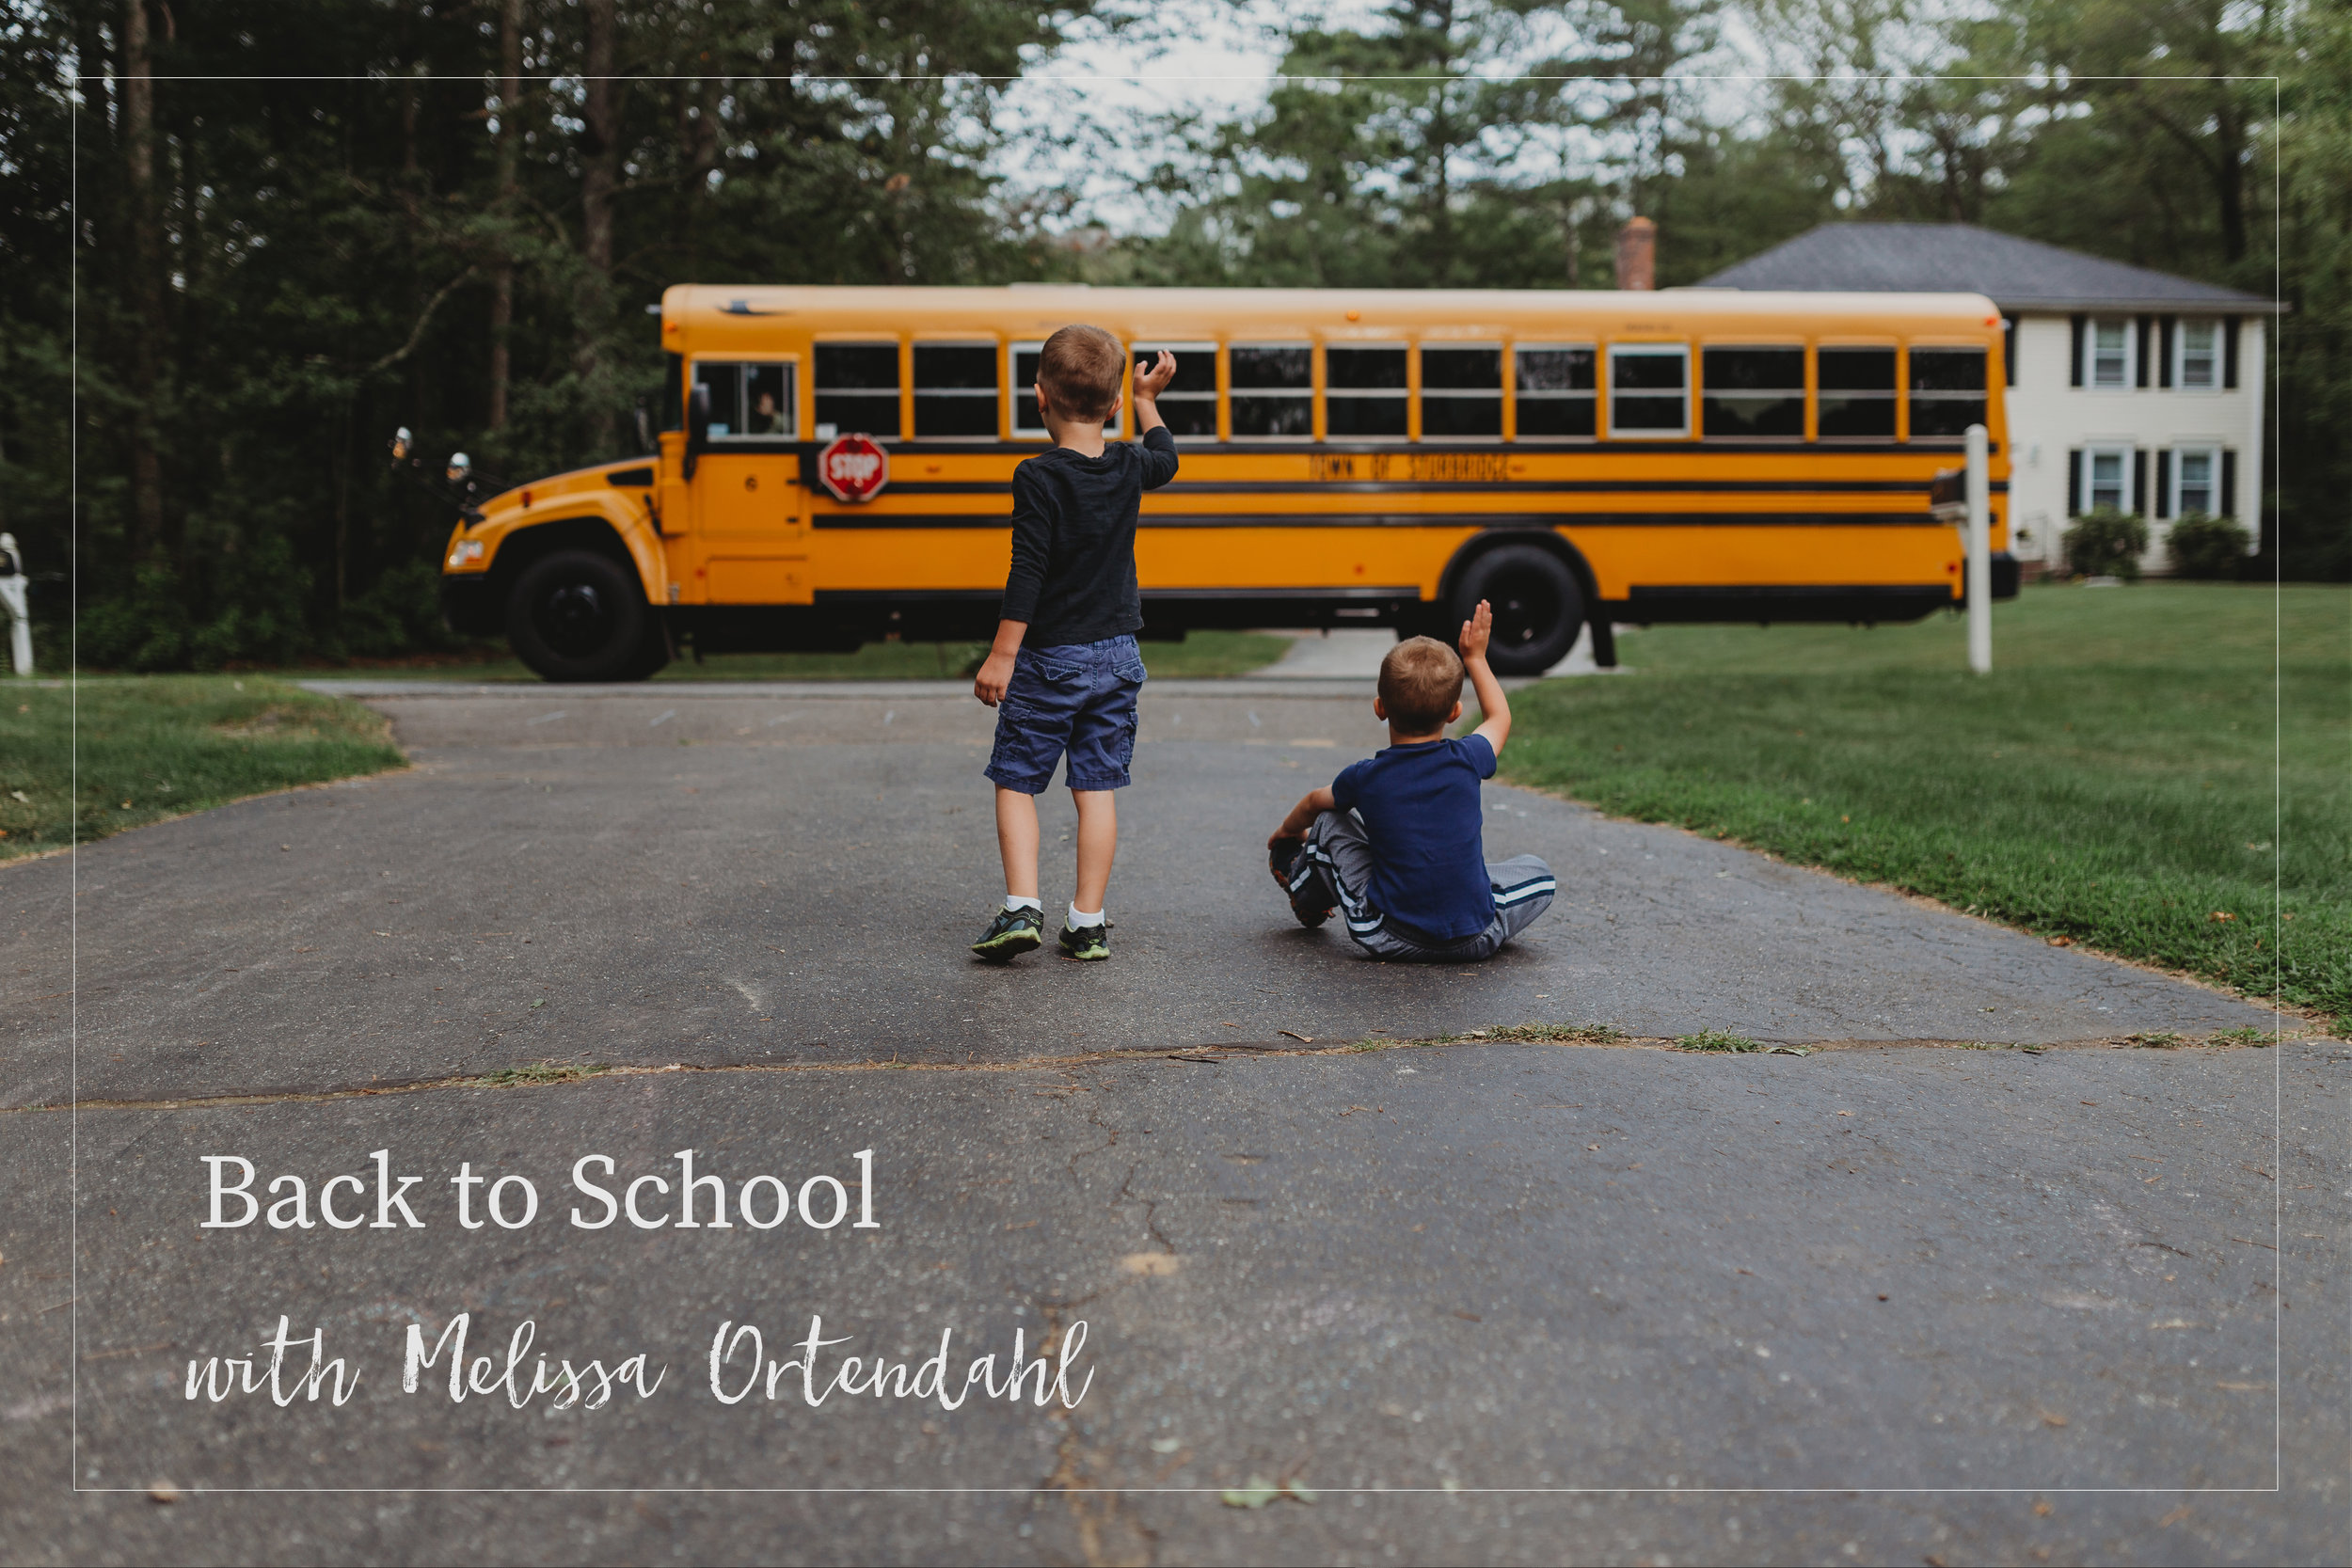 Back to School: A Mini Course - with Melissa Ortendahl